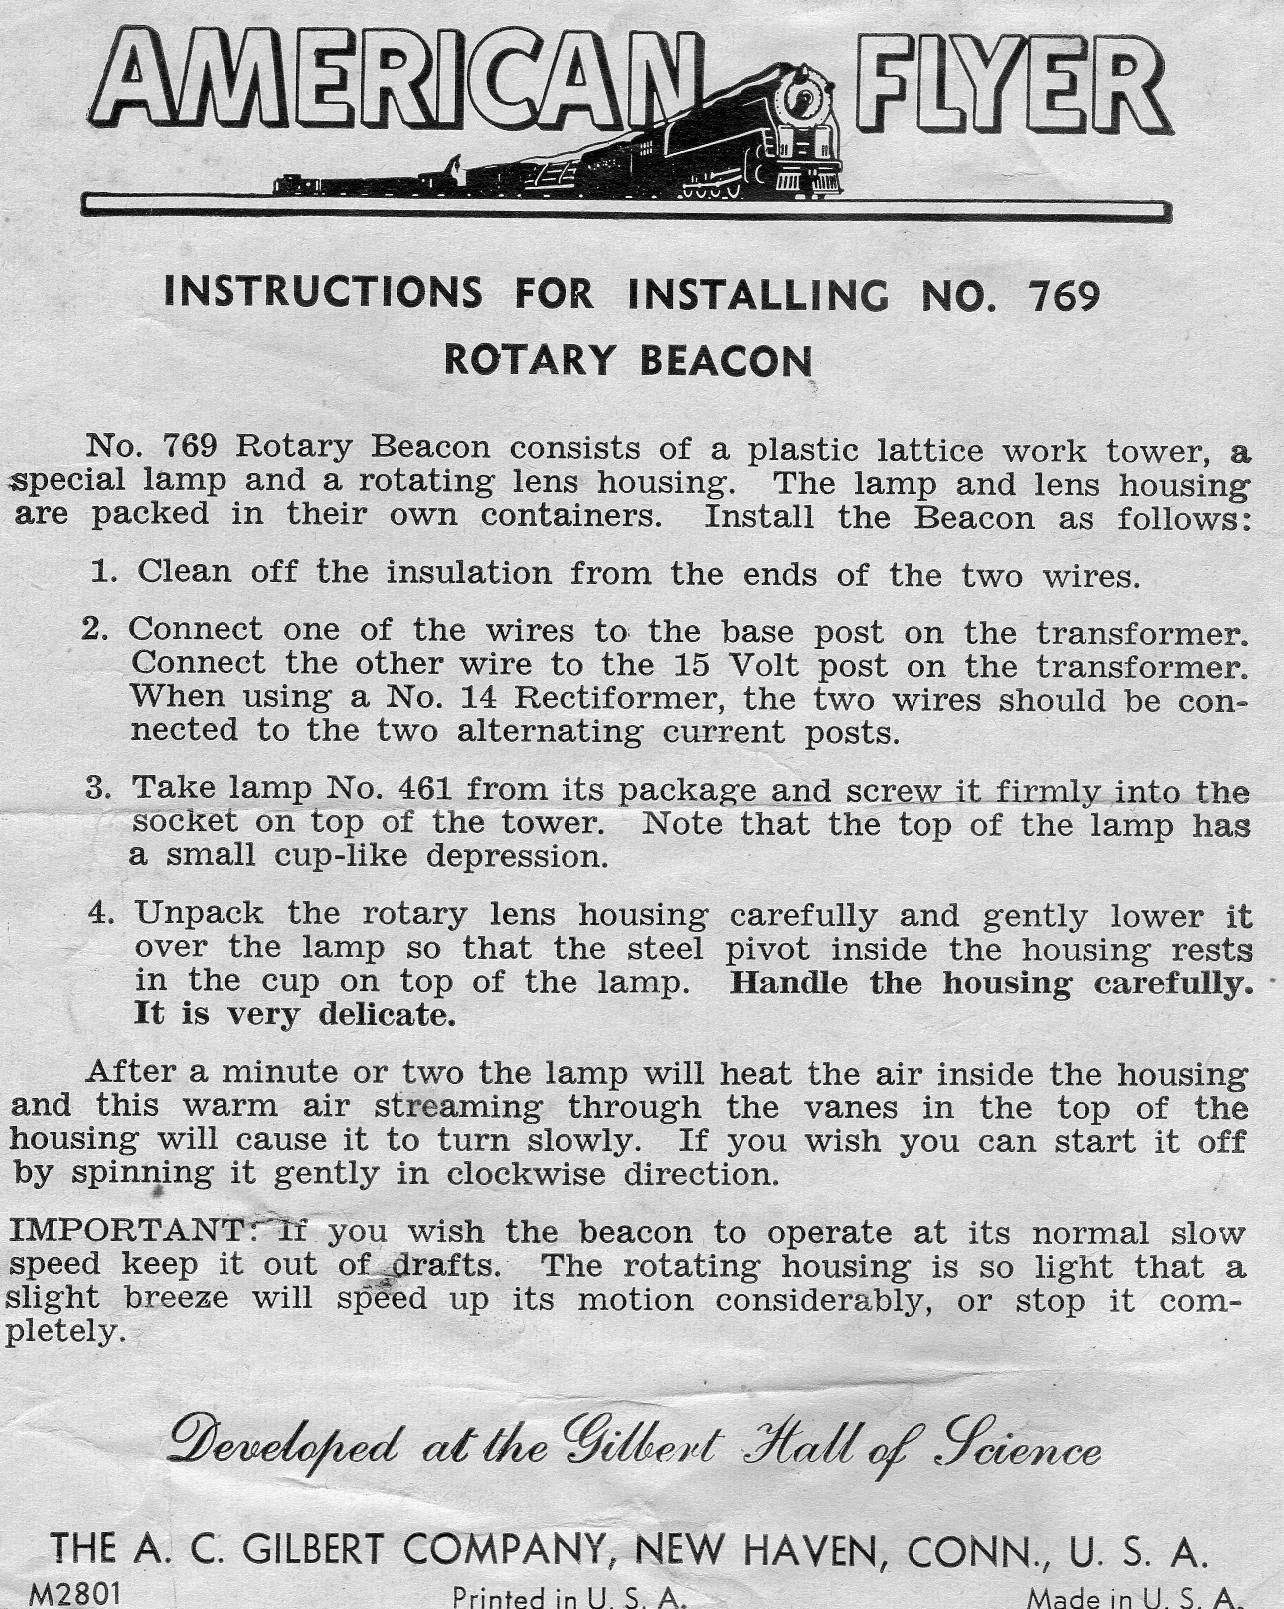 American Flyer Rotary Beacon 769 Instructions